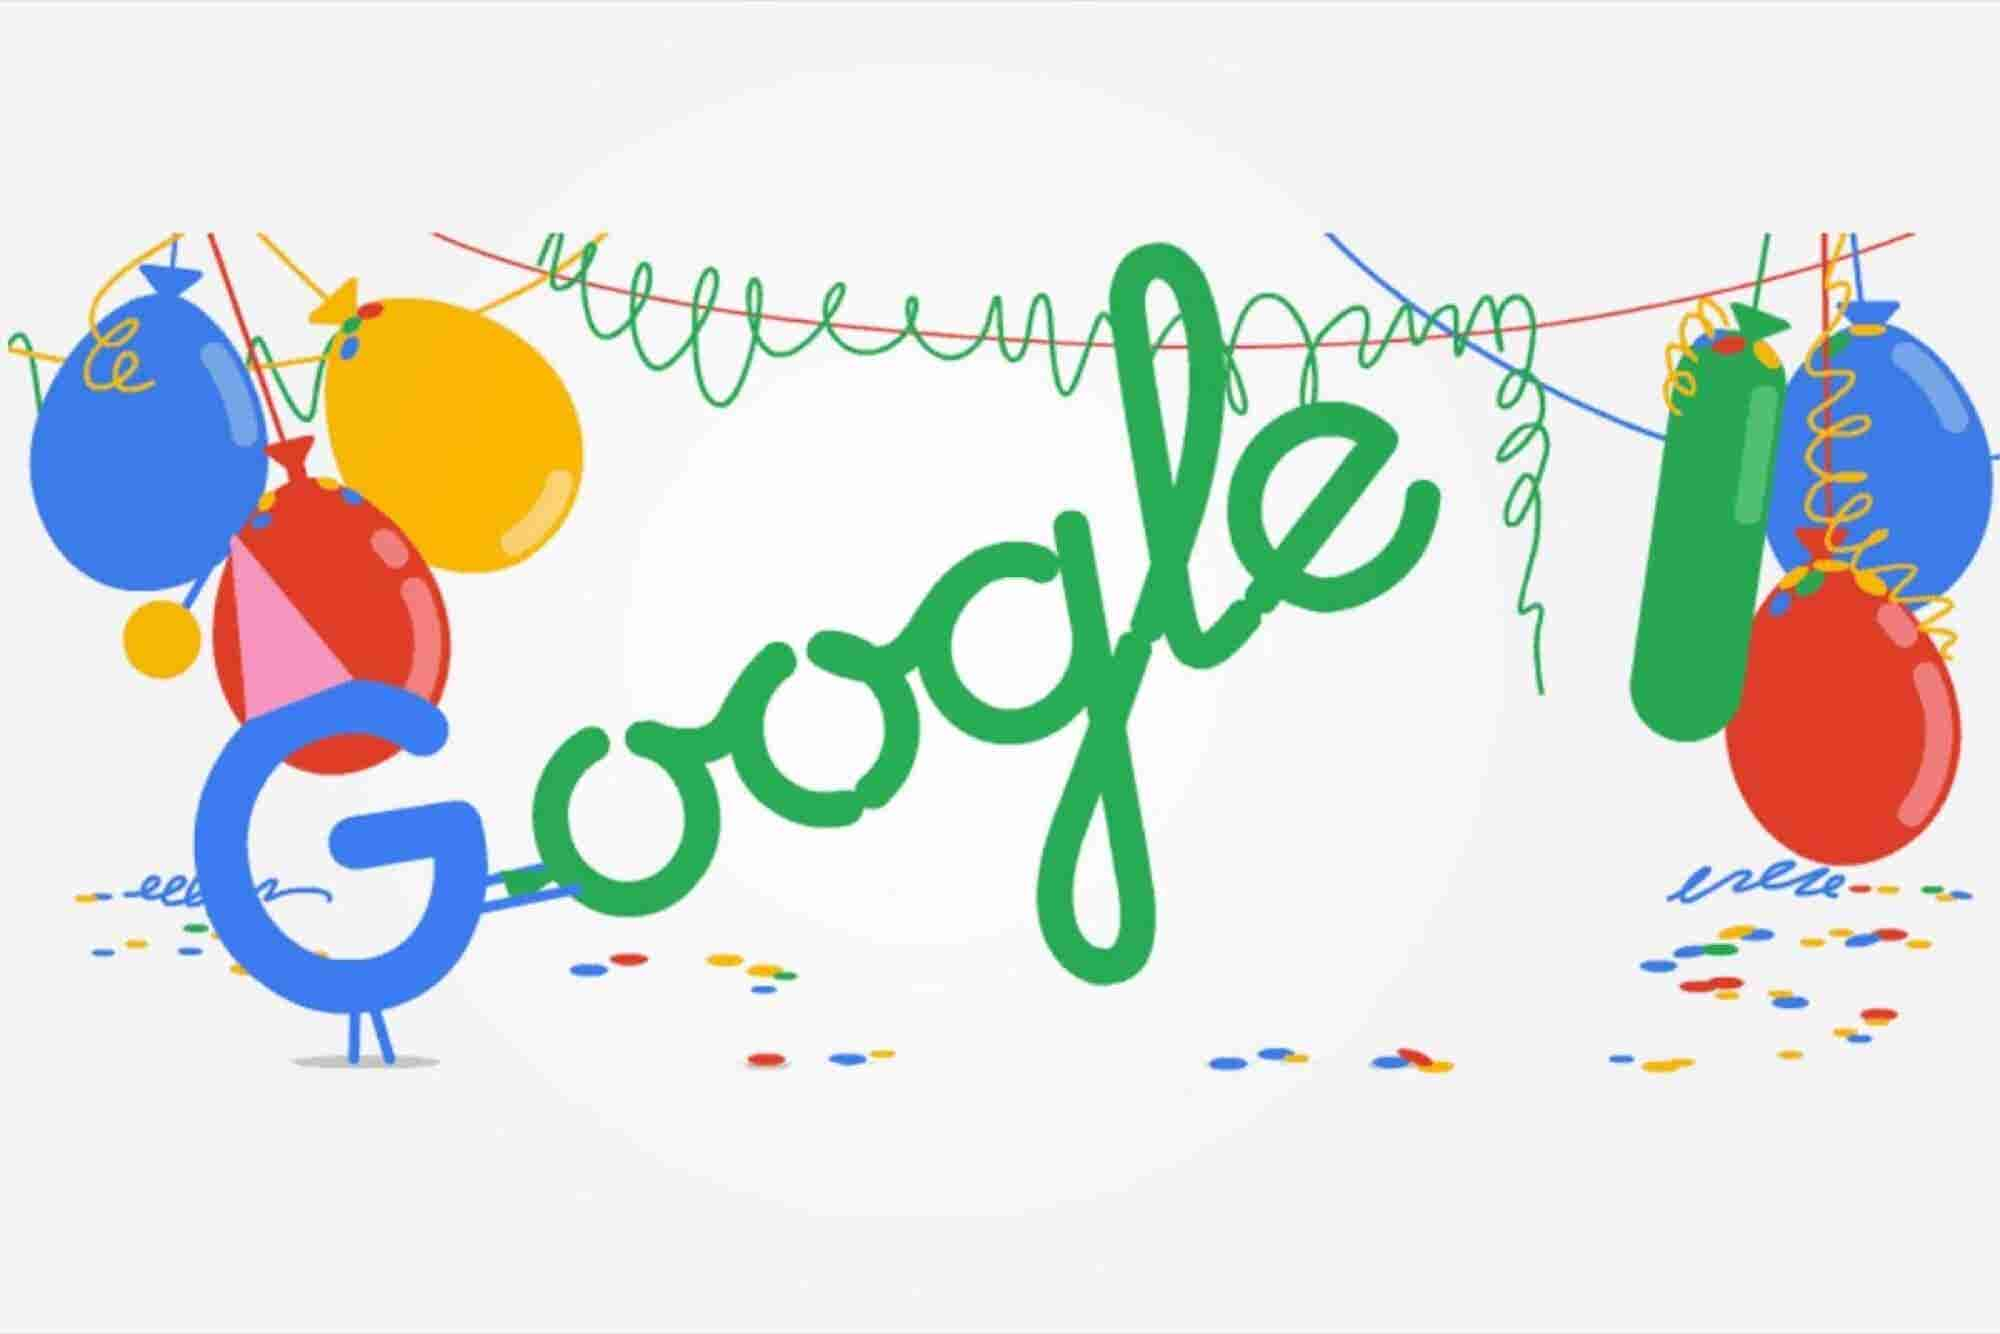 10 Inspiring Quotes From People Featured as Google Doodles